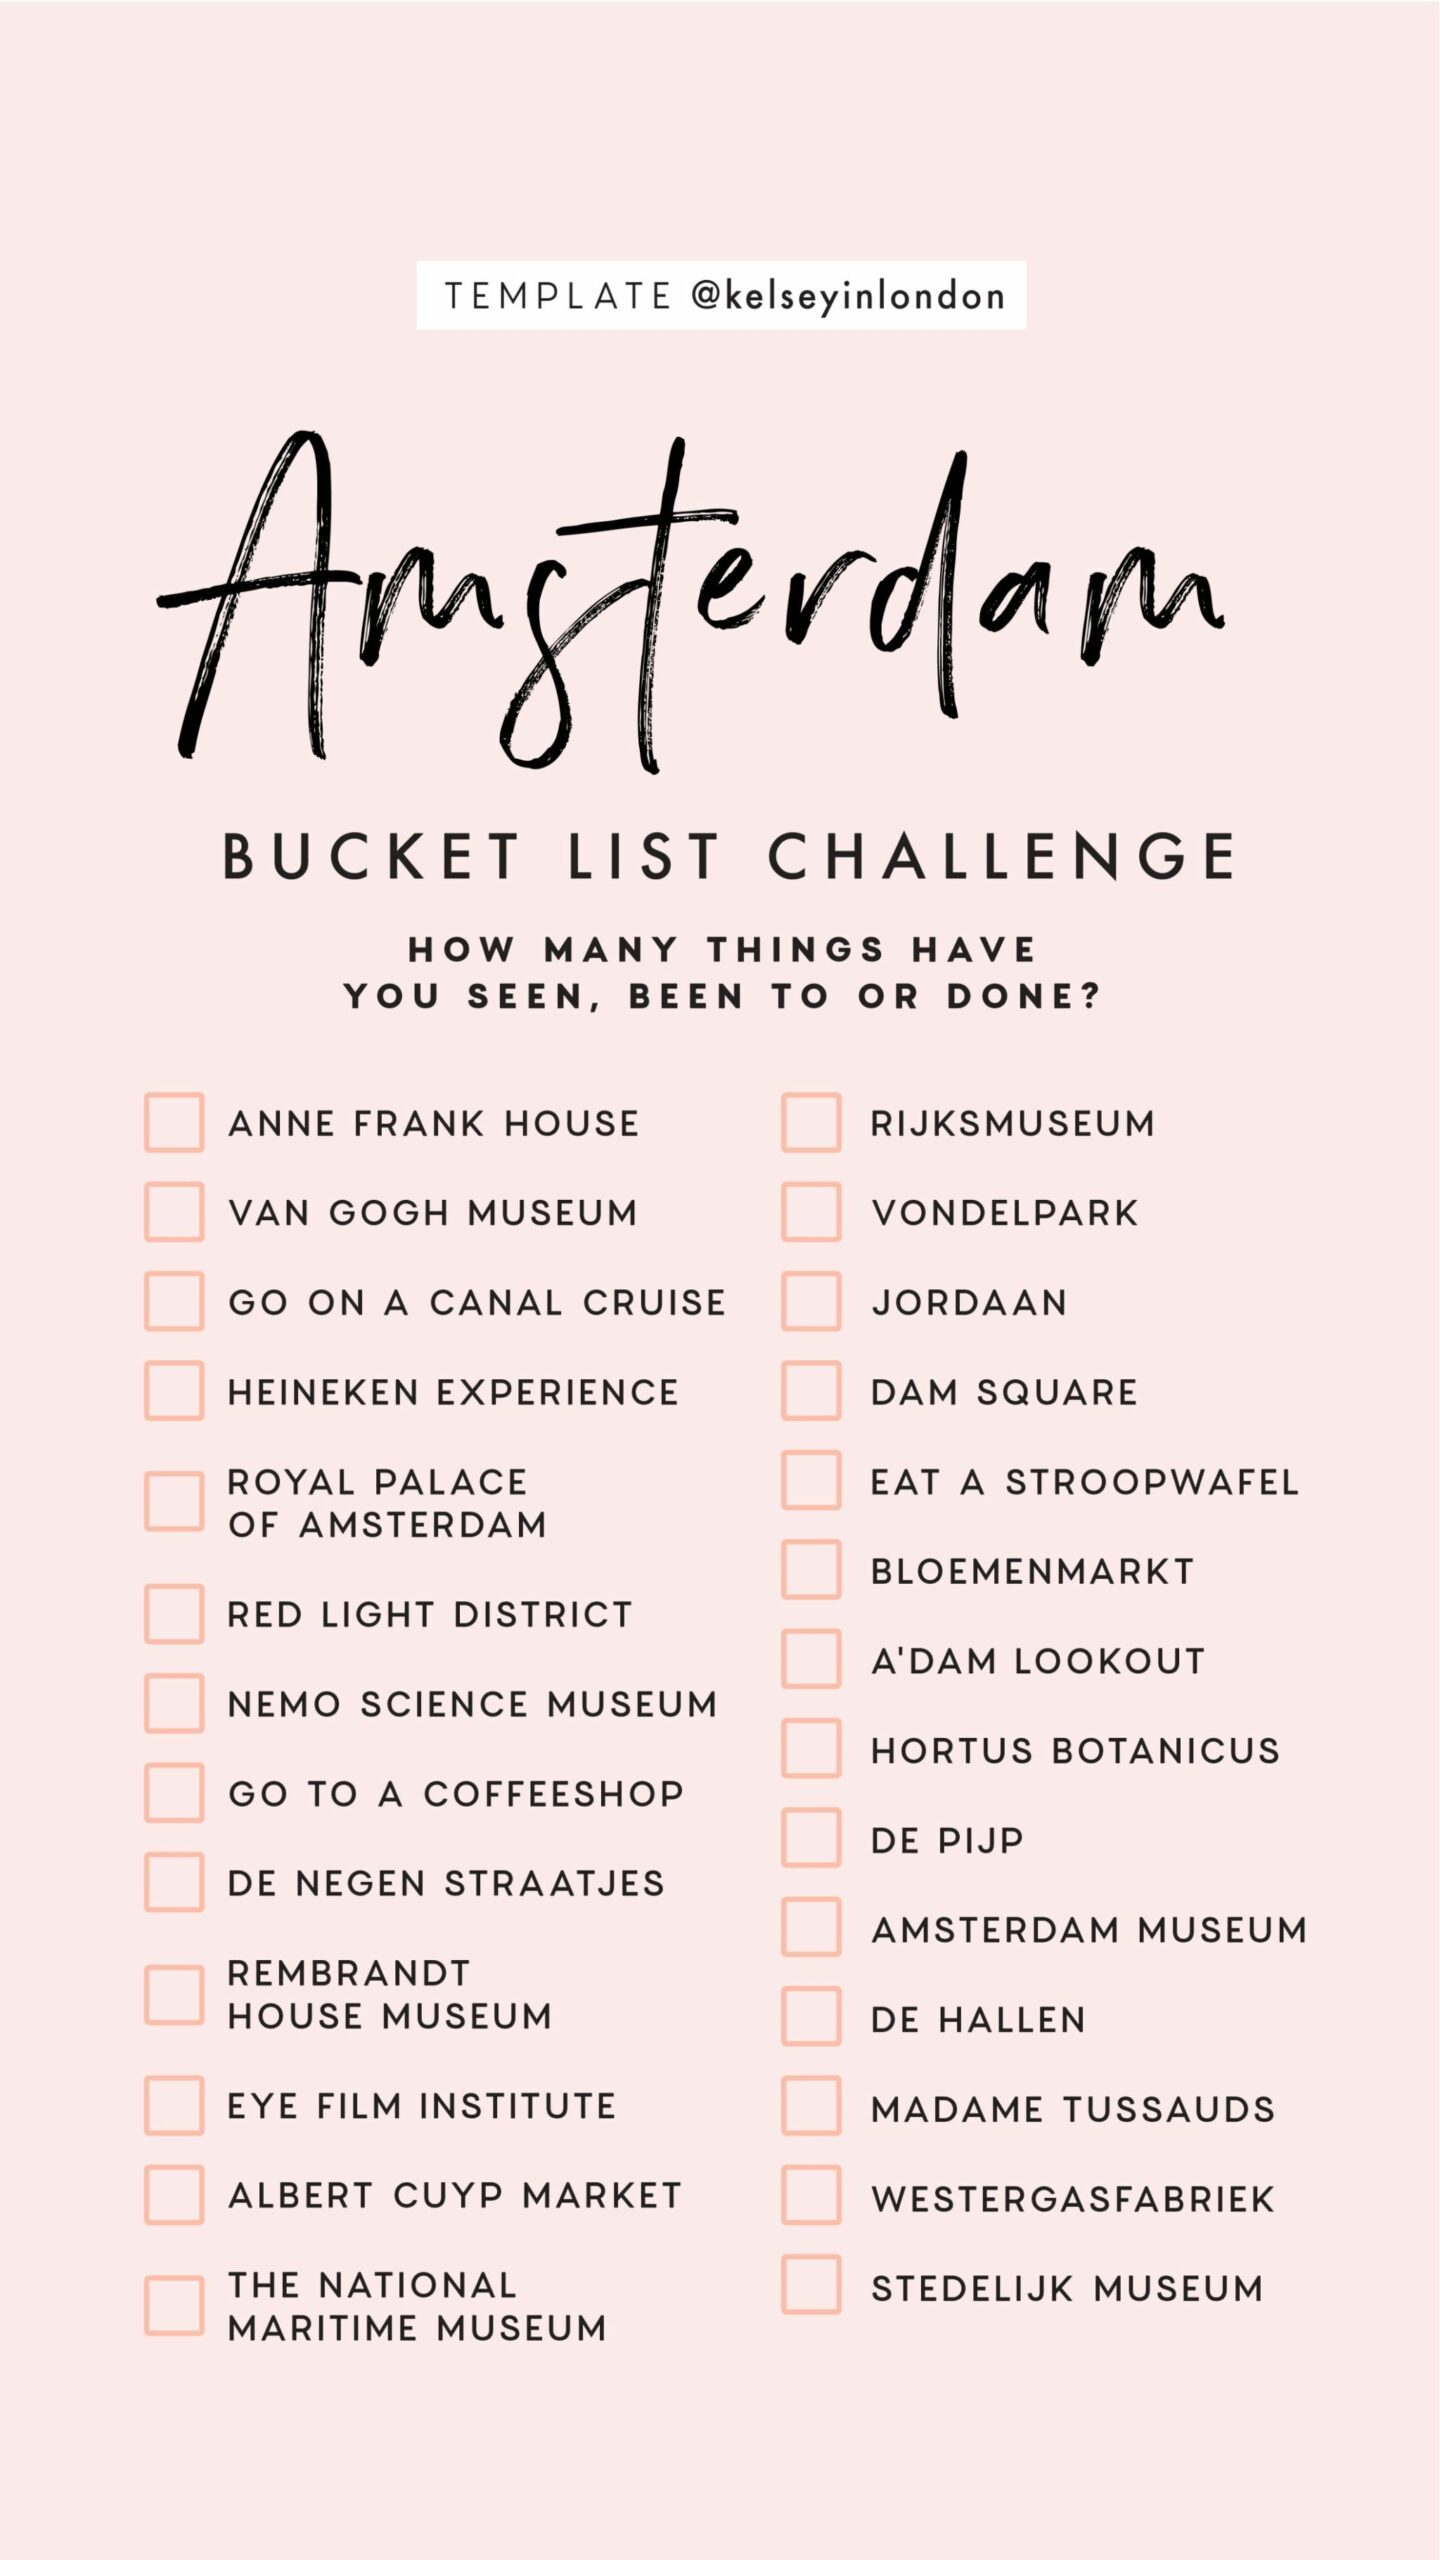 Top things to do in Amsterdam Bucket list Instagram Story Template kelseyinlondon Kelsey Heinrichs What to do in Amsterdam Where to go in Amsterdam top places in Amsterdam